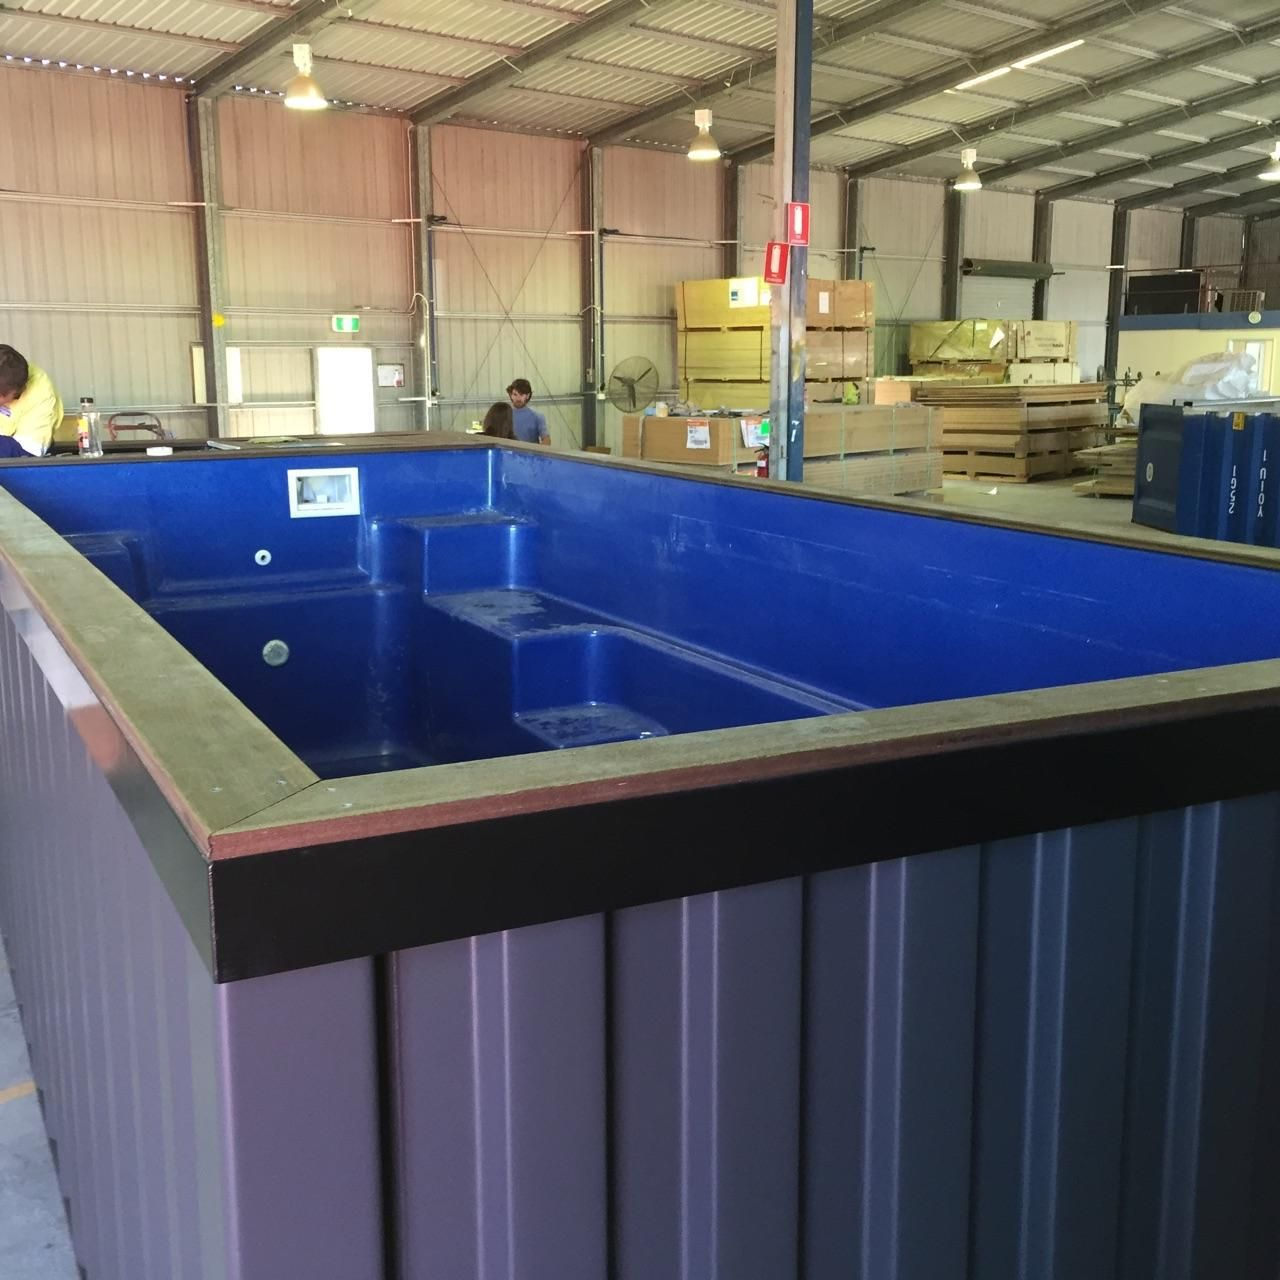 Summer Upcycling at it's Best Shipping Container Pool